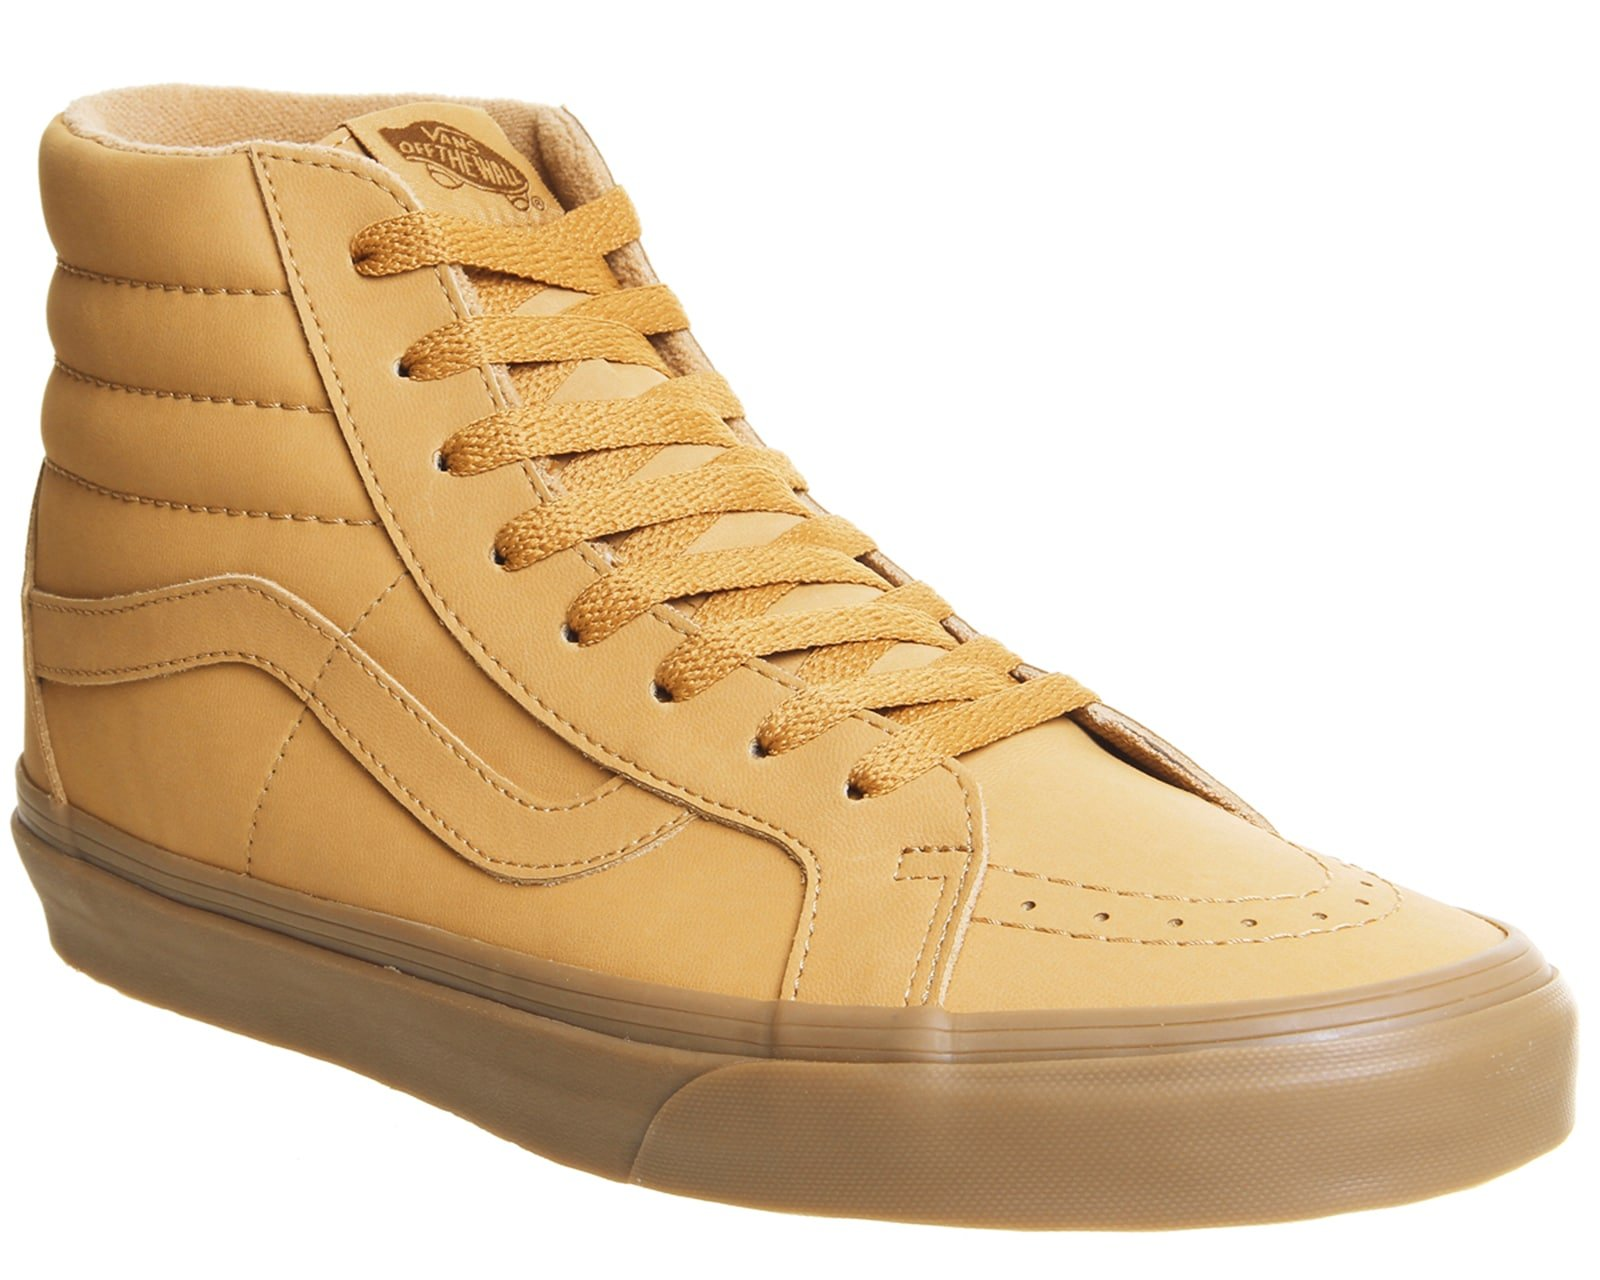 0c2931eef4 Galleon - Vans Unisex Sk8-Hi Reissue (Vansbuck) Light Gum Mono Skate Shoe 9  Men US 10.5 Women